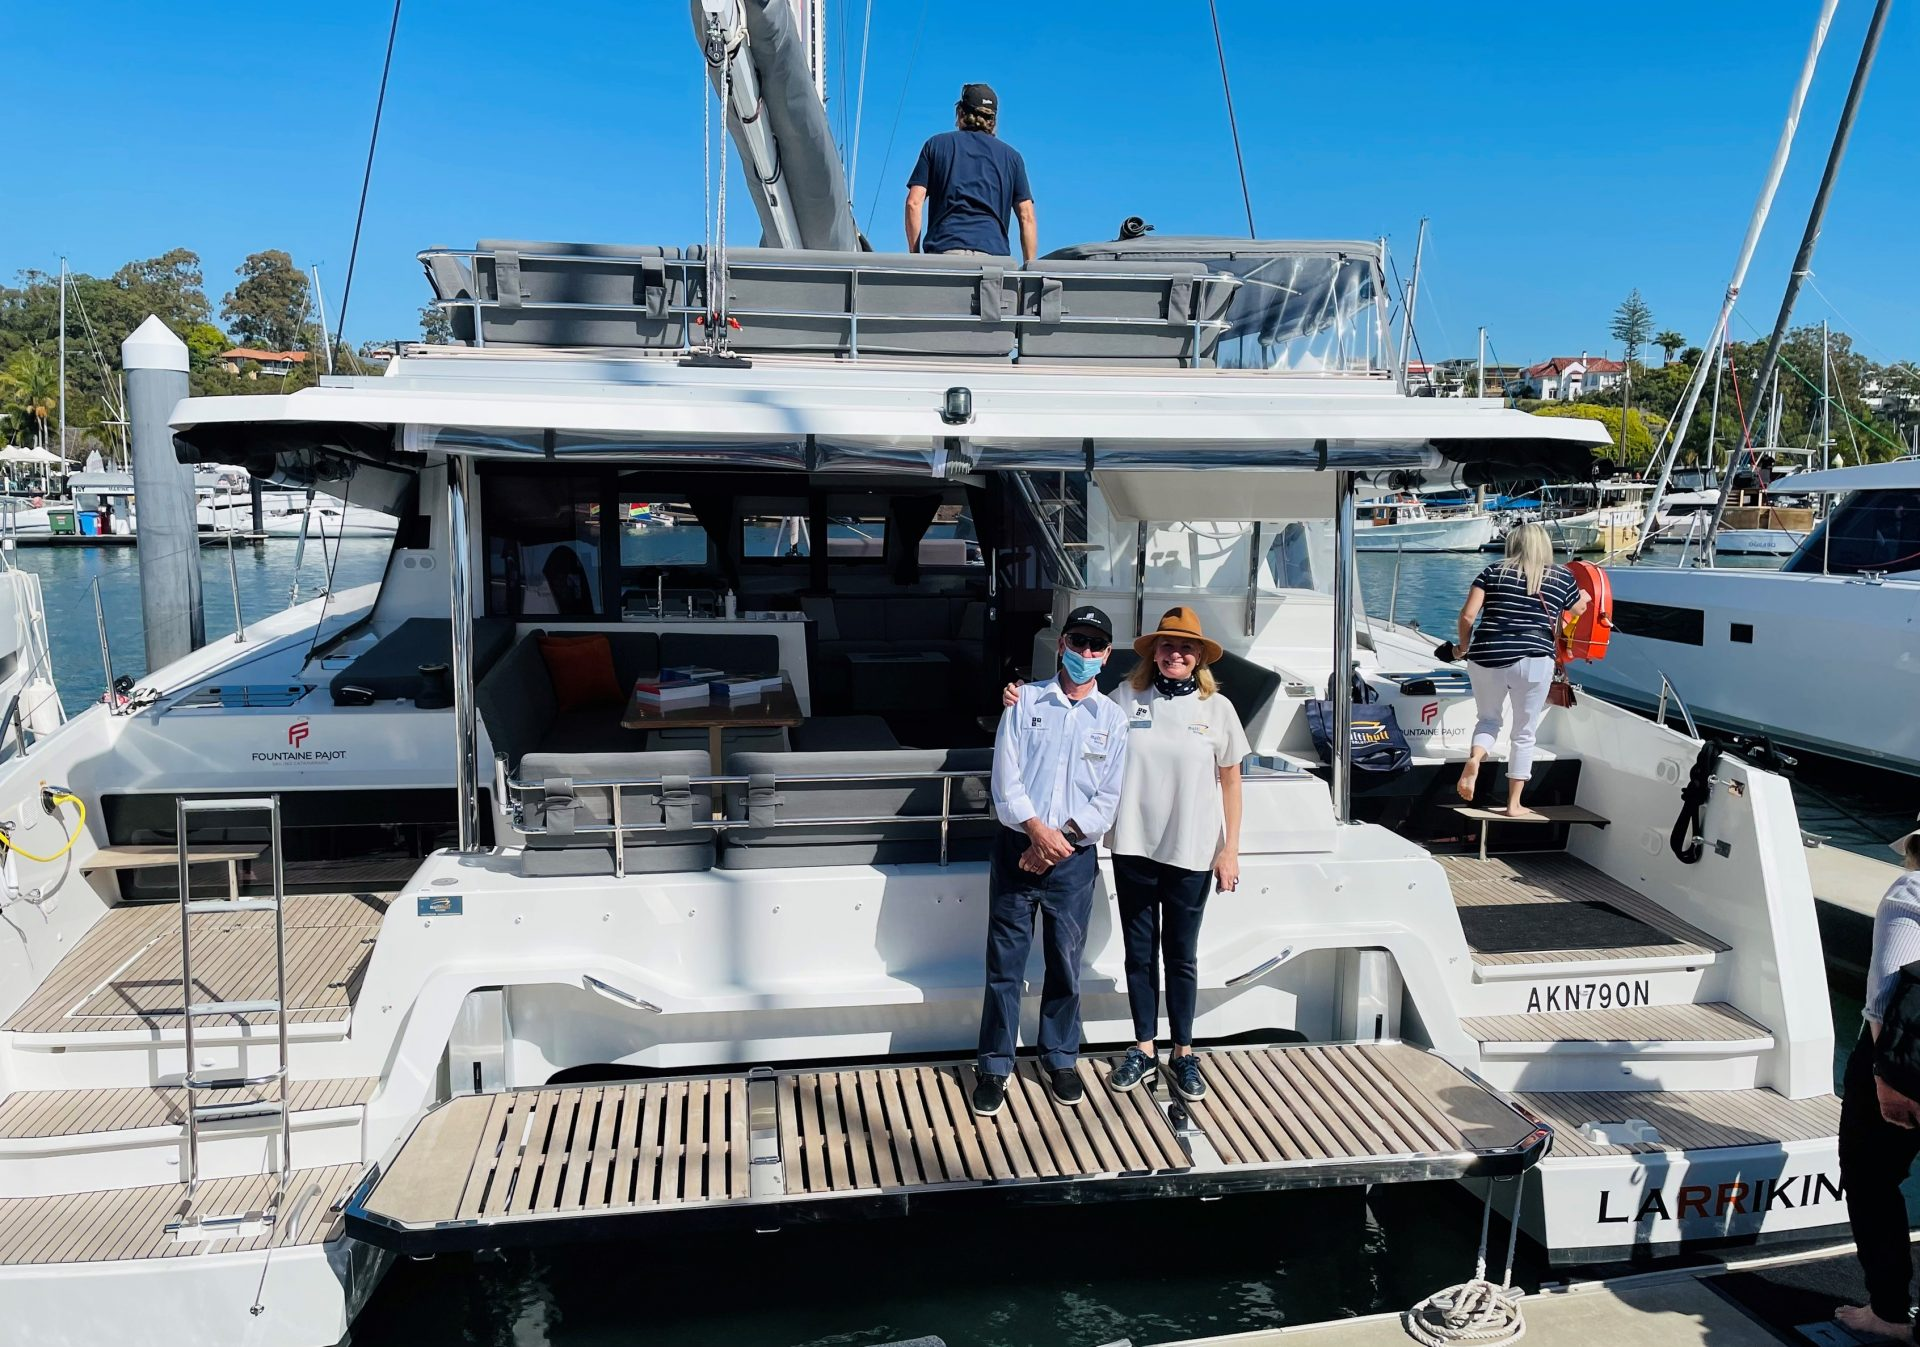 team members fo Multihull Solutions onboard one of their vessels at the Brisbane Yachting Expo